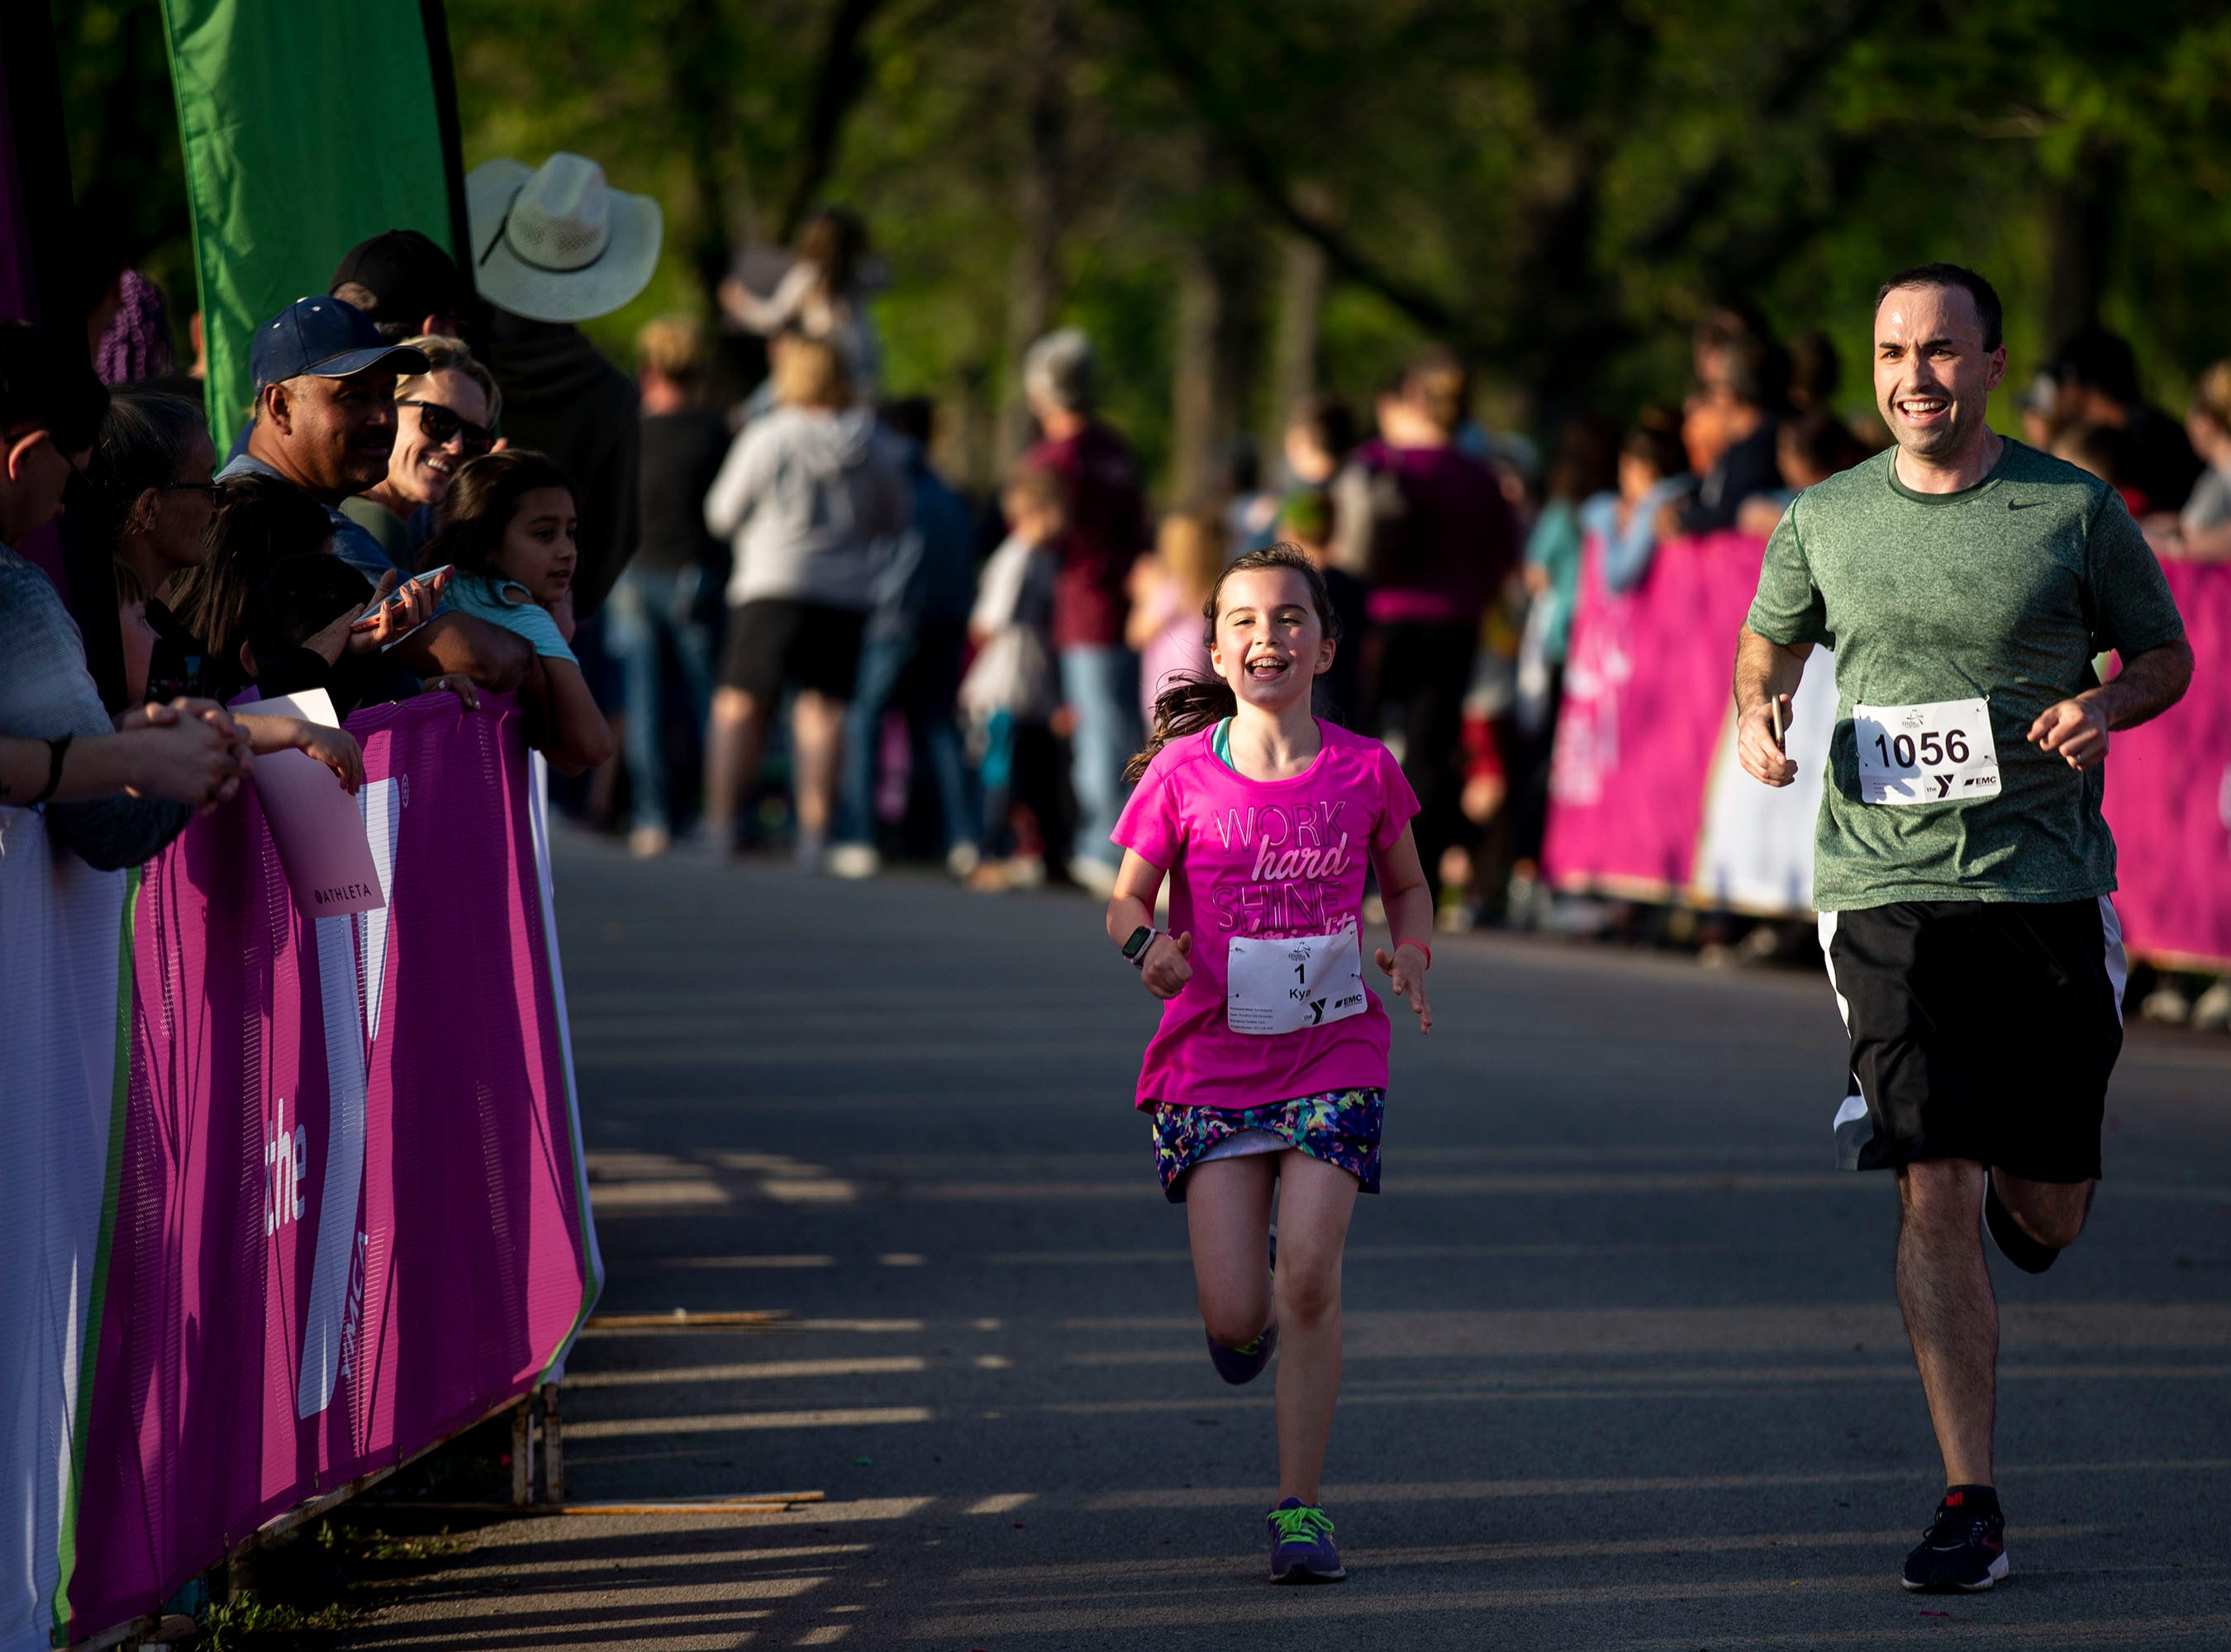 Runners make their way to the finish of the Girls on the Run 5K on Tuesday, May 14, 2019, in Water Works Park in Des Moines. The 5K is a celebration for the 800 girls in Central Iowa, marking the end of the spring season of Girls on the Run.